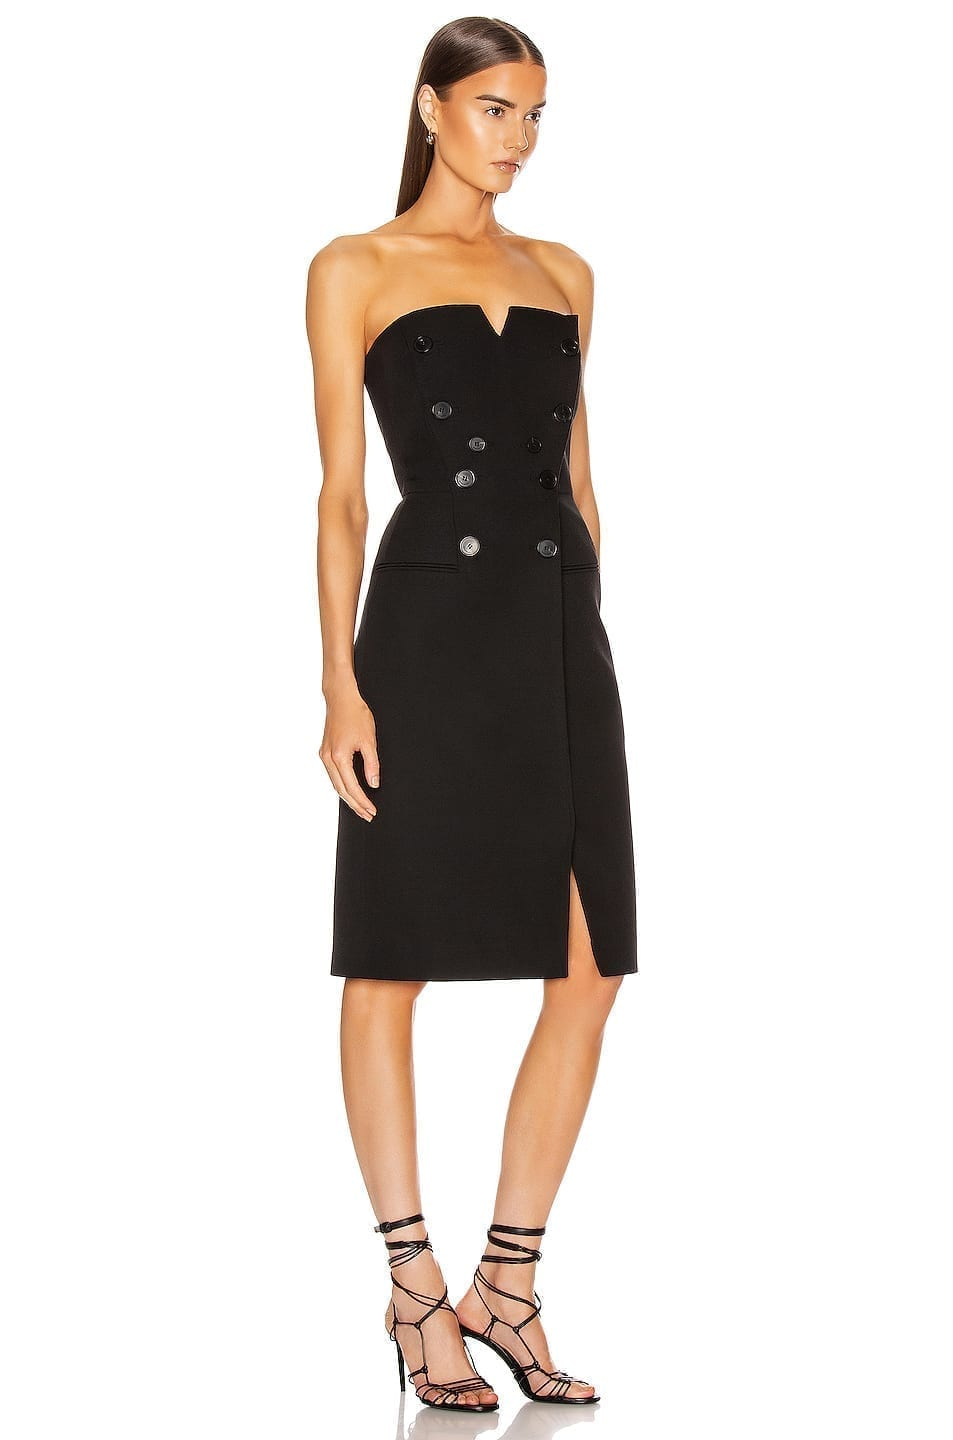 GIVENCHY Bustier Mini Dress